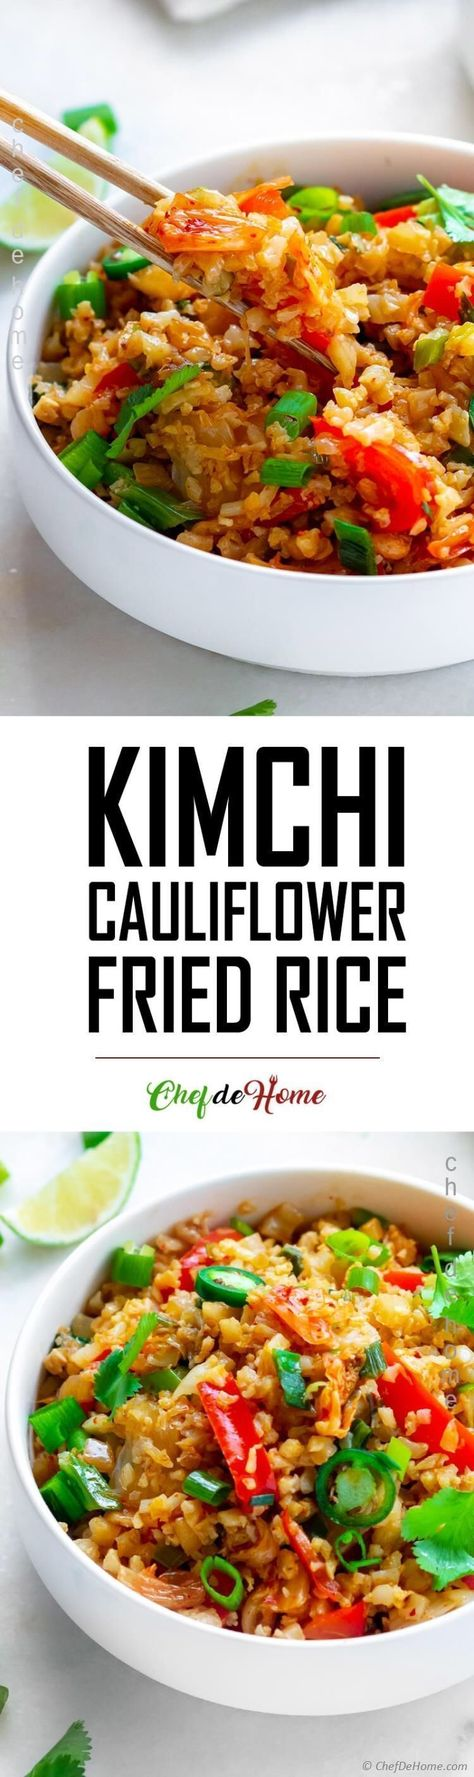 Kimchi Fried Rice, quintessential Korean fried rice recipe, where rice (low carb cauliflower rice) are pan fried with Korean Kimchi, seasoning and veggies. This recipe is not traditional Fried Rice but a low carb version of the Korean favorite. #glutenfree #cauliflower #rice #kimchi #fried #rice #recipe #vegan #spicyfood #healthyrecipes #plantbaseddiet #keto #lowcarb #diet #vegetarian #cauliflowerfriedrice Kimchi Fried Rice, quintessential Korean fried rice recipe, where rice (low carb cauliflow